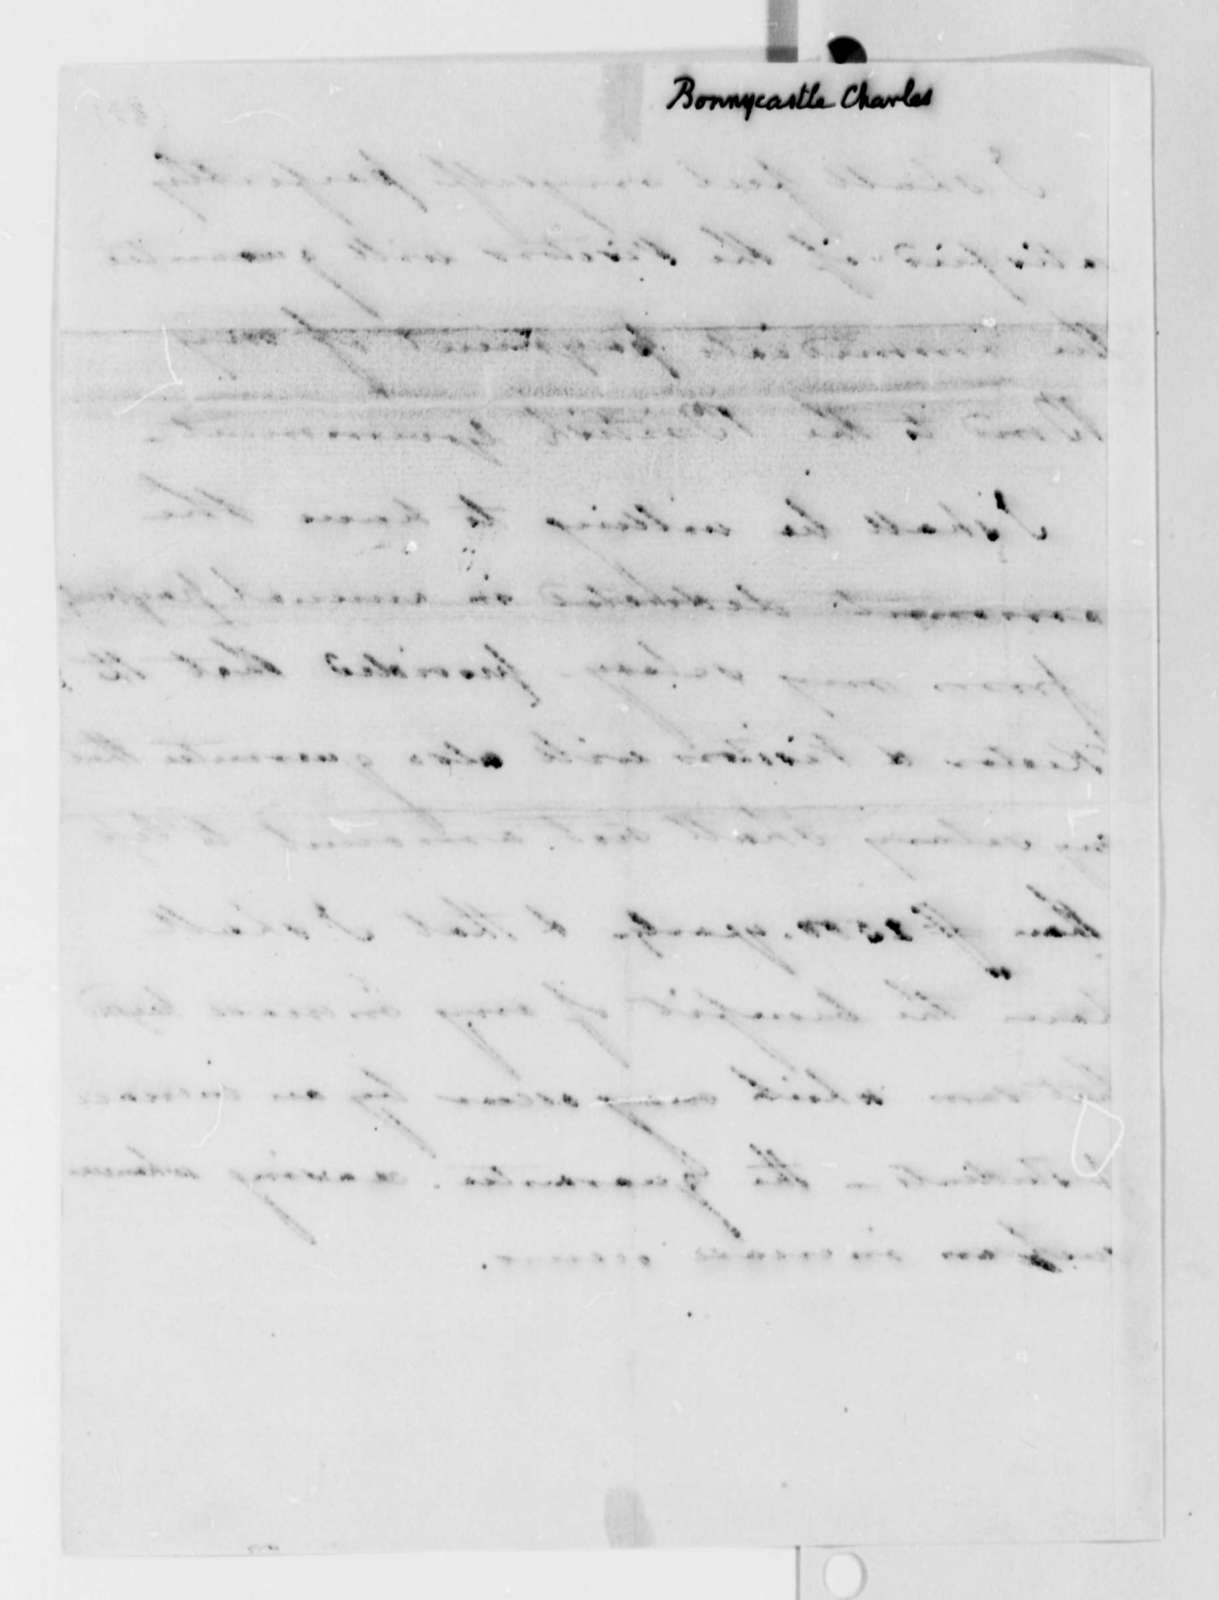 Charles Bonnycastle to University of Virginia, September 8, 1825, Note on Bond